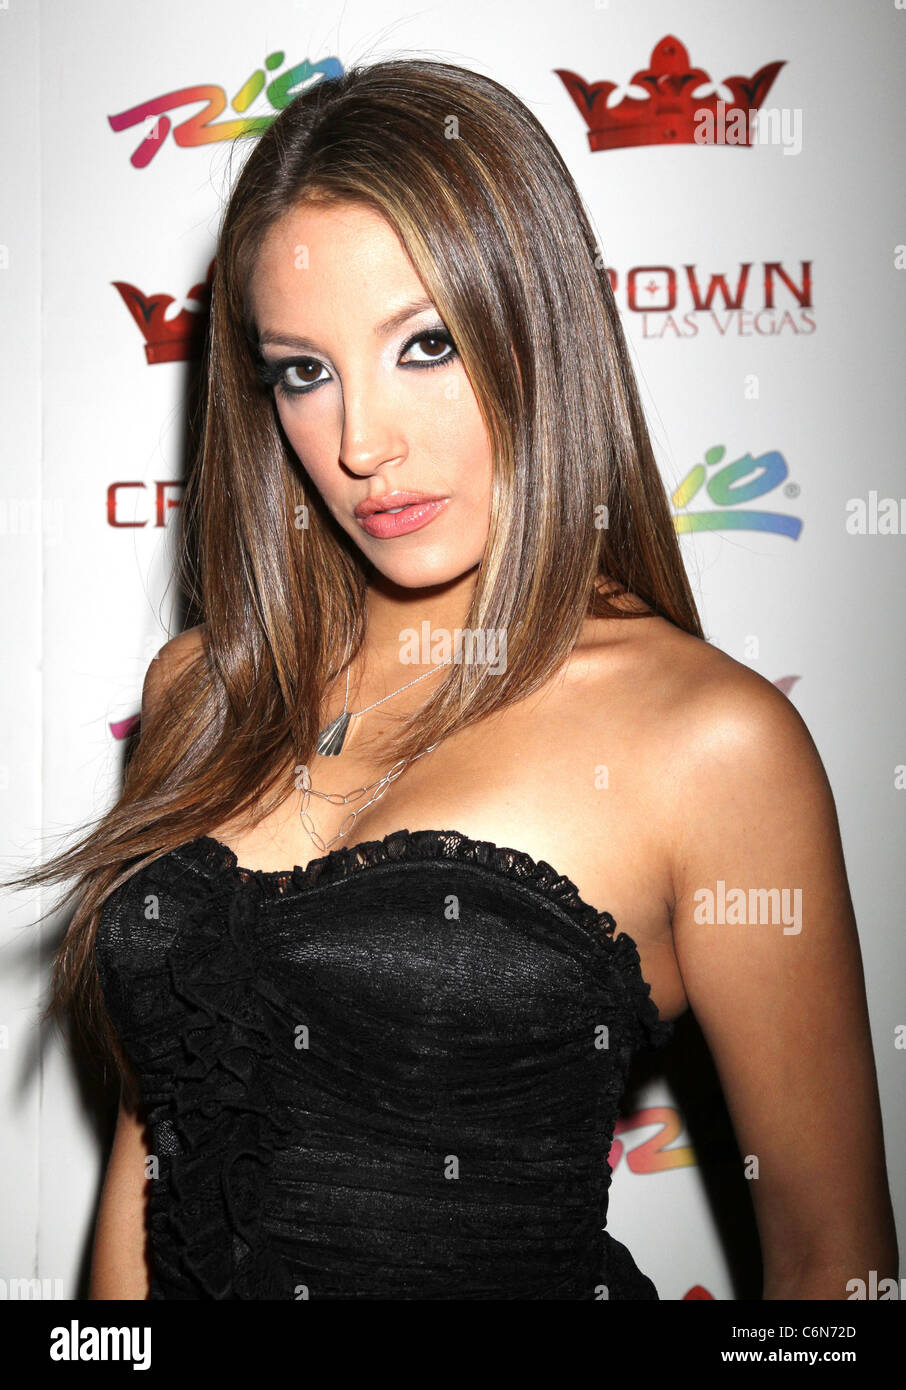 Jenna Haze nudes (26 foto and video), Pussy, Cleavage, Twitter, cameltoe 2018